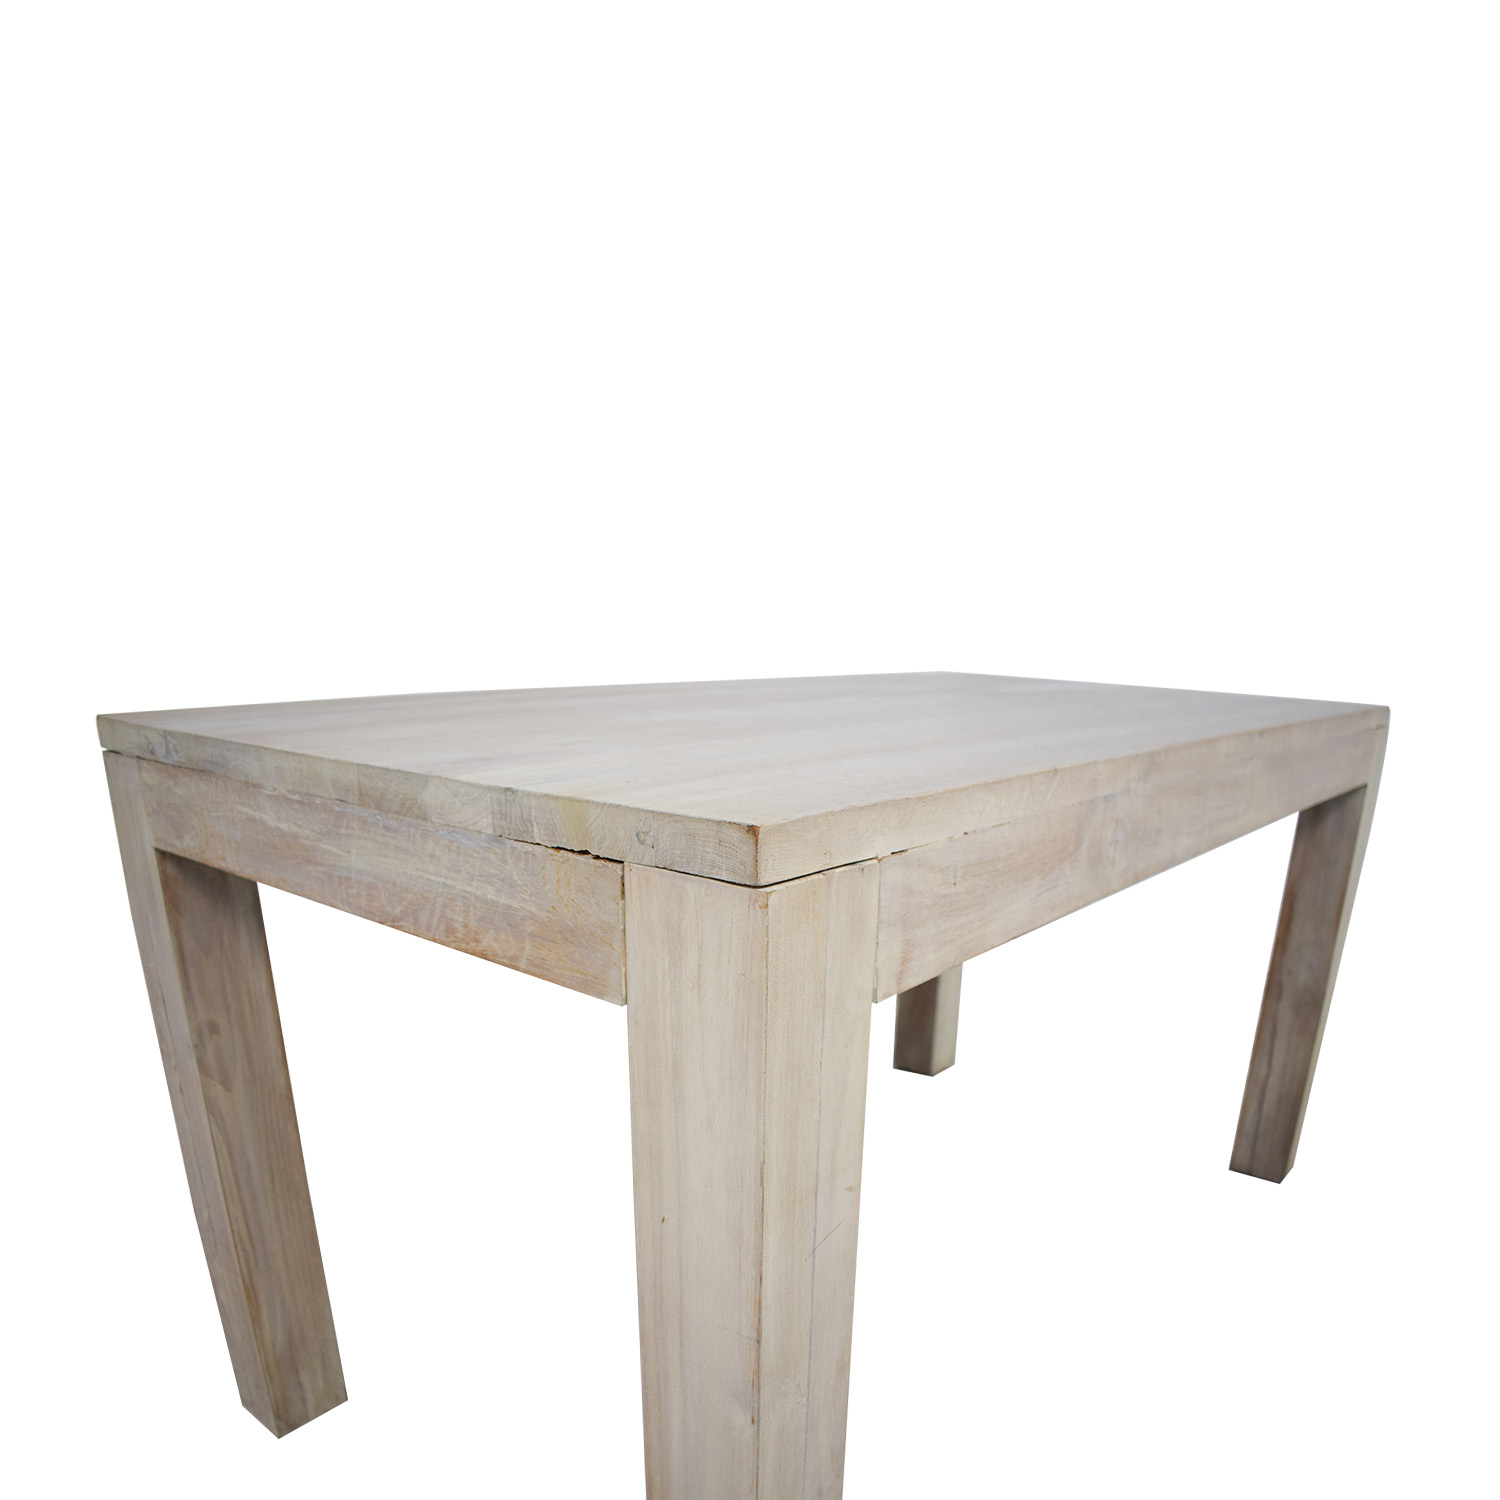 buy TREE Hong Kong TREE Hong Kong Reclaimed Raw Oak Wood Dining Table with Benches online